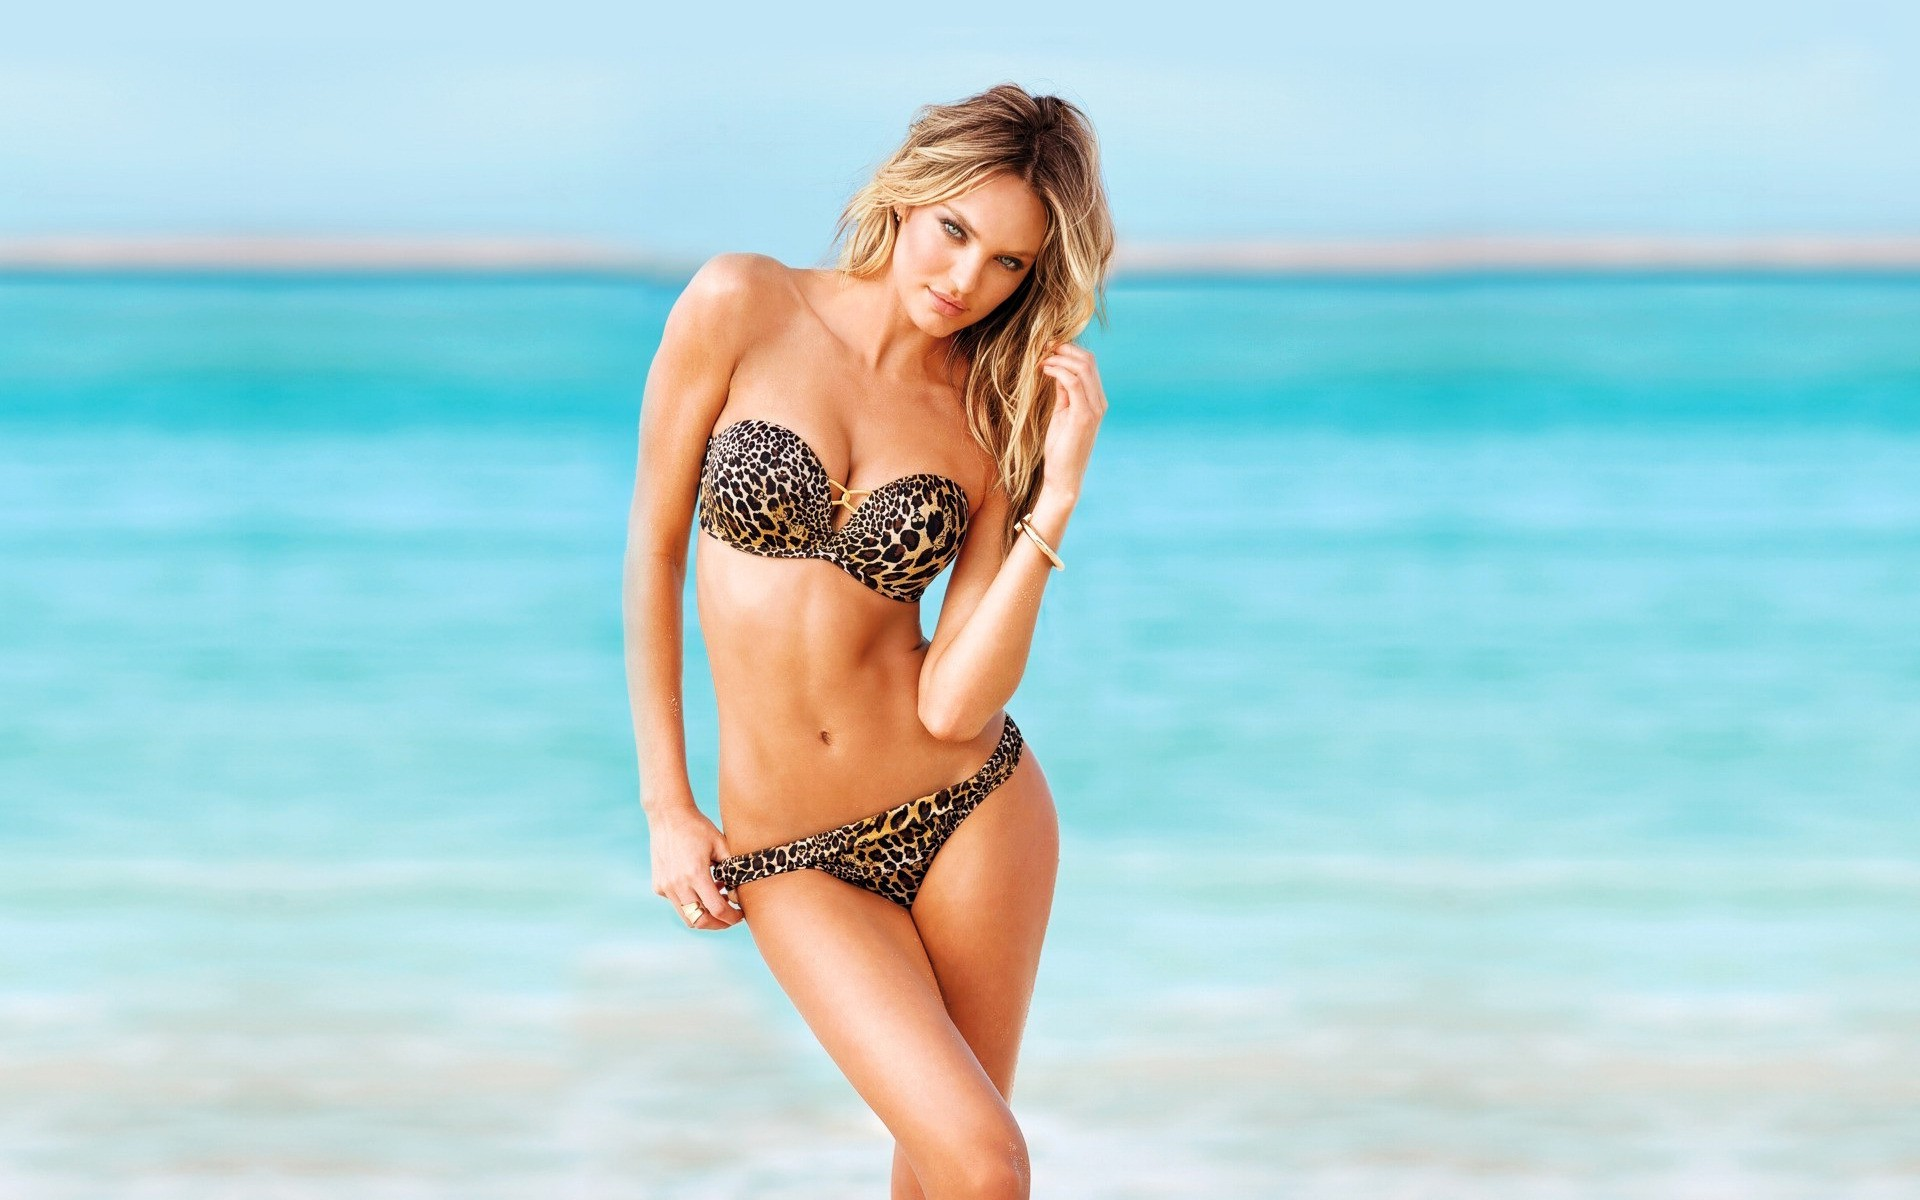 Bikini Screensaver Download